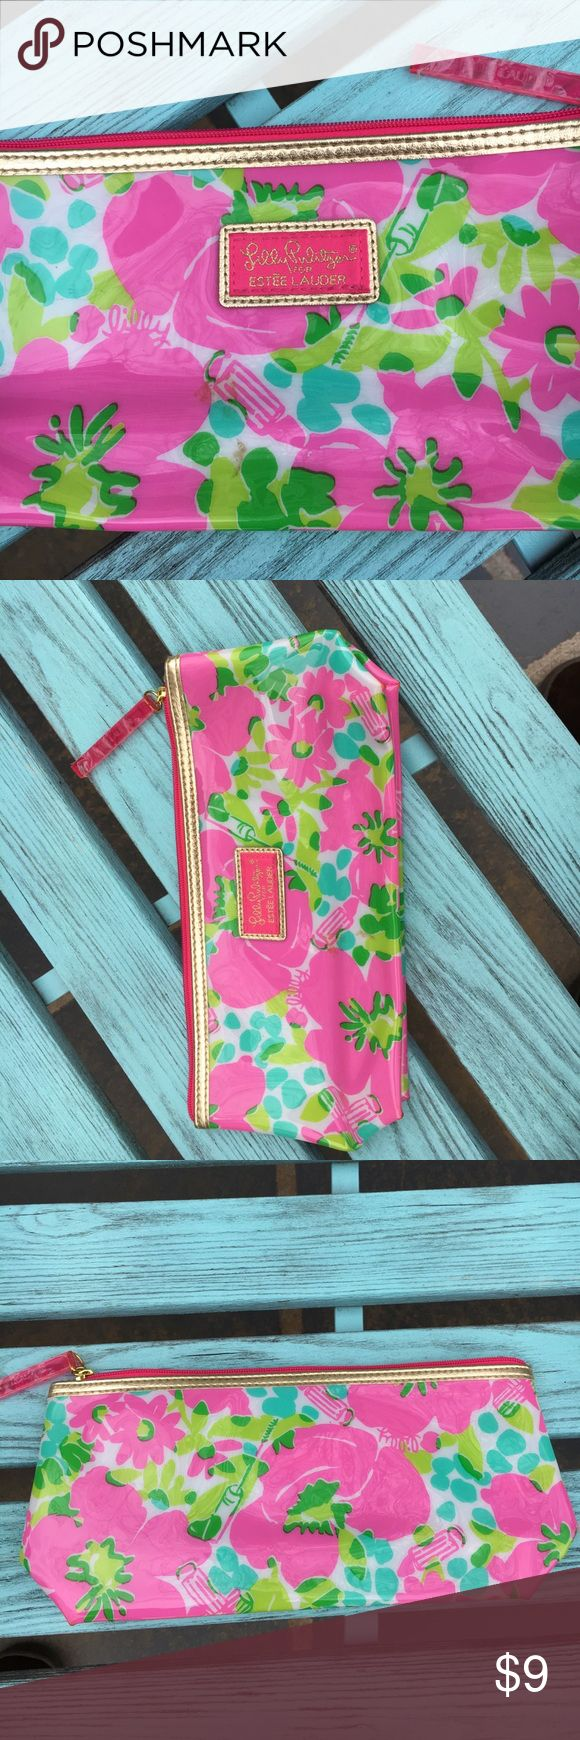 Lilly Pulitzer by Estée Lauder makeup bag Lilly Pulitzer by Estée Lauder makeup bag. Still has the plastic covering the pin pull tag! No marks and in excellent condition!! Lilly Pulitzer Bags Cosmetic Bags & Cases